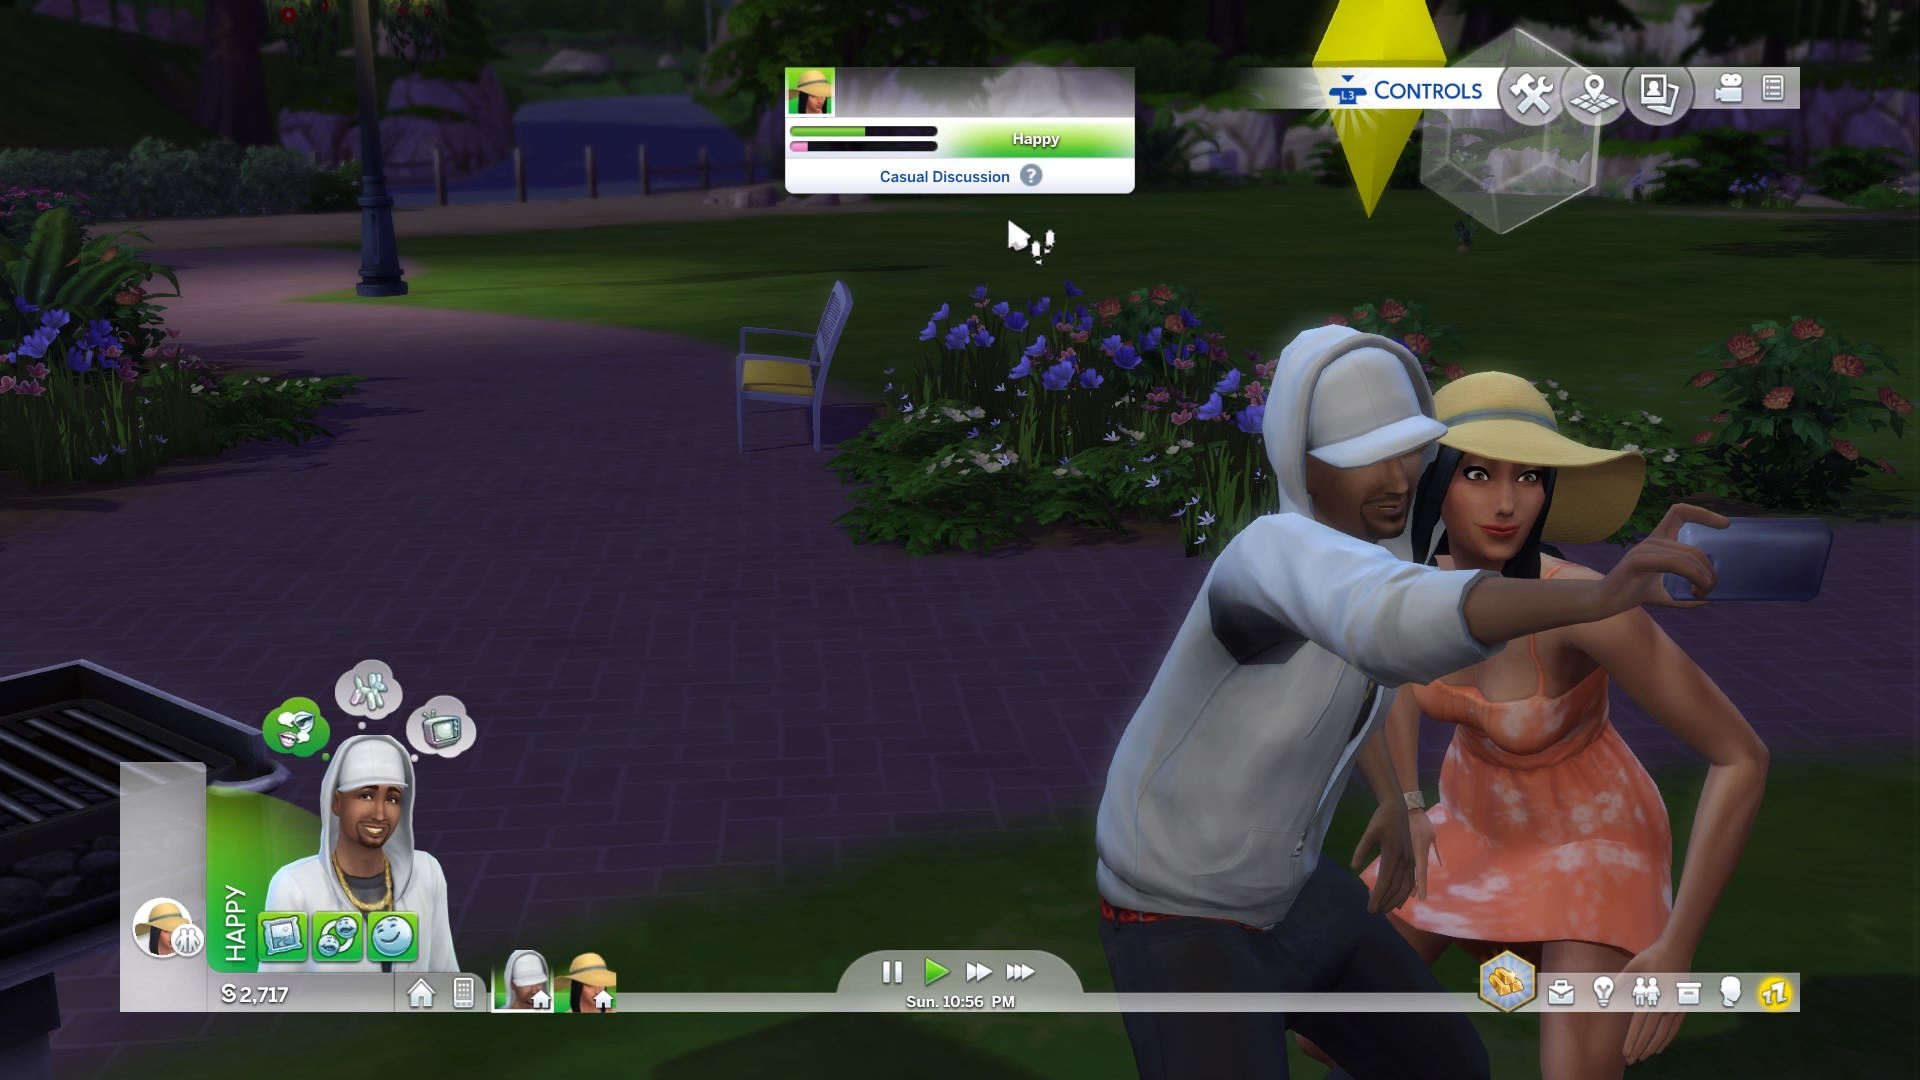 The Sims 4: Vale a Pena? 2